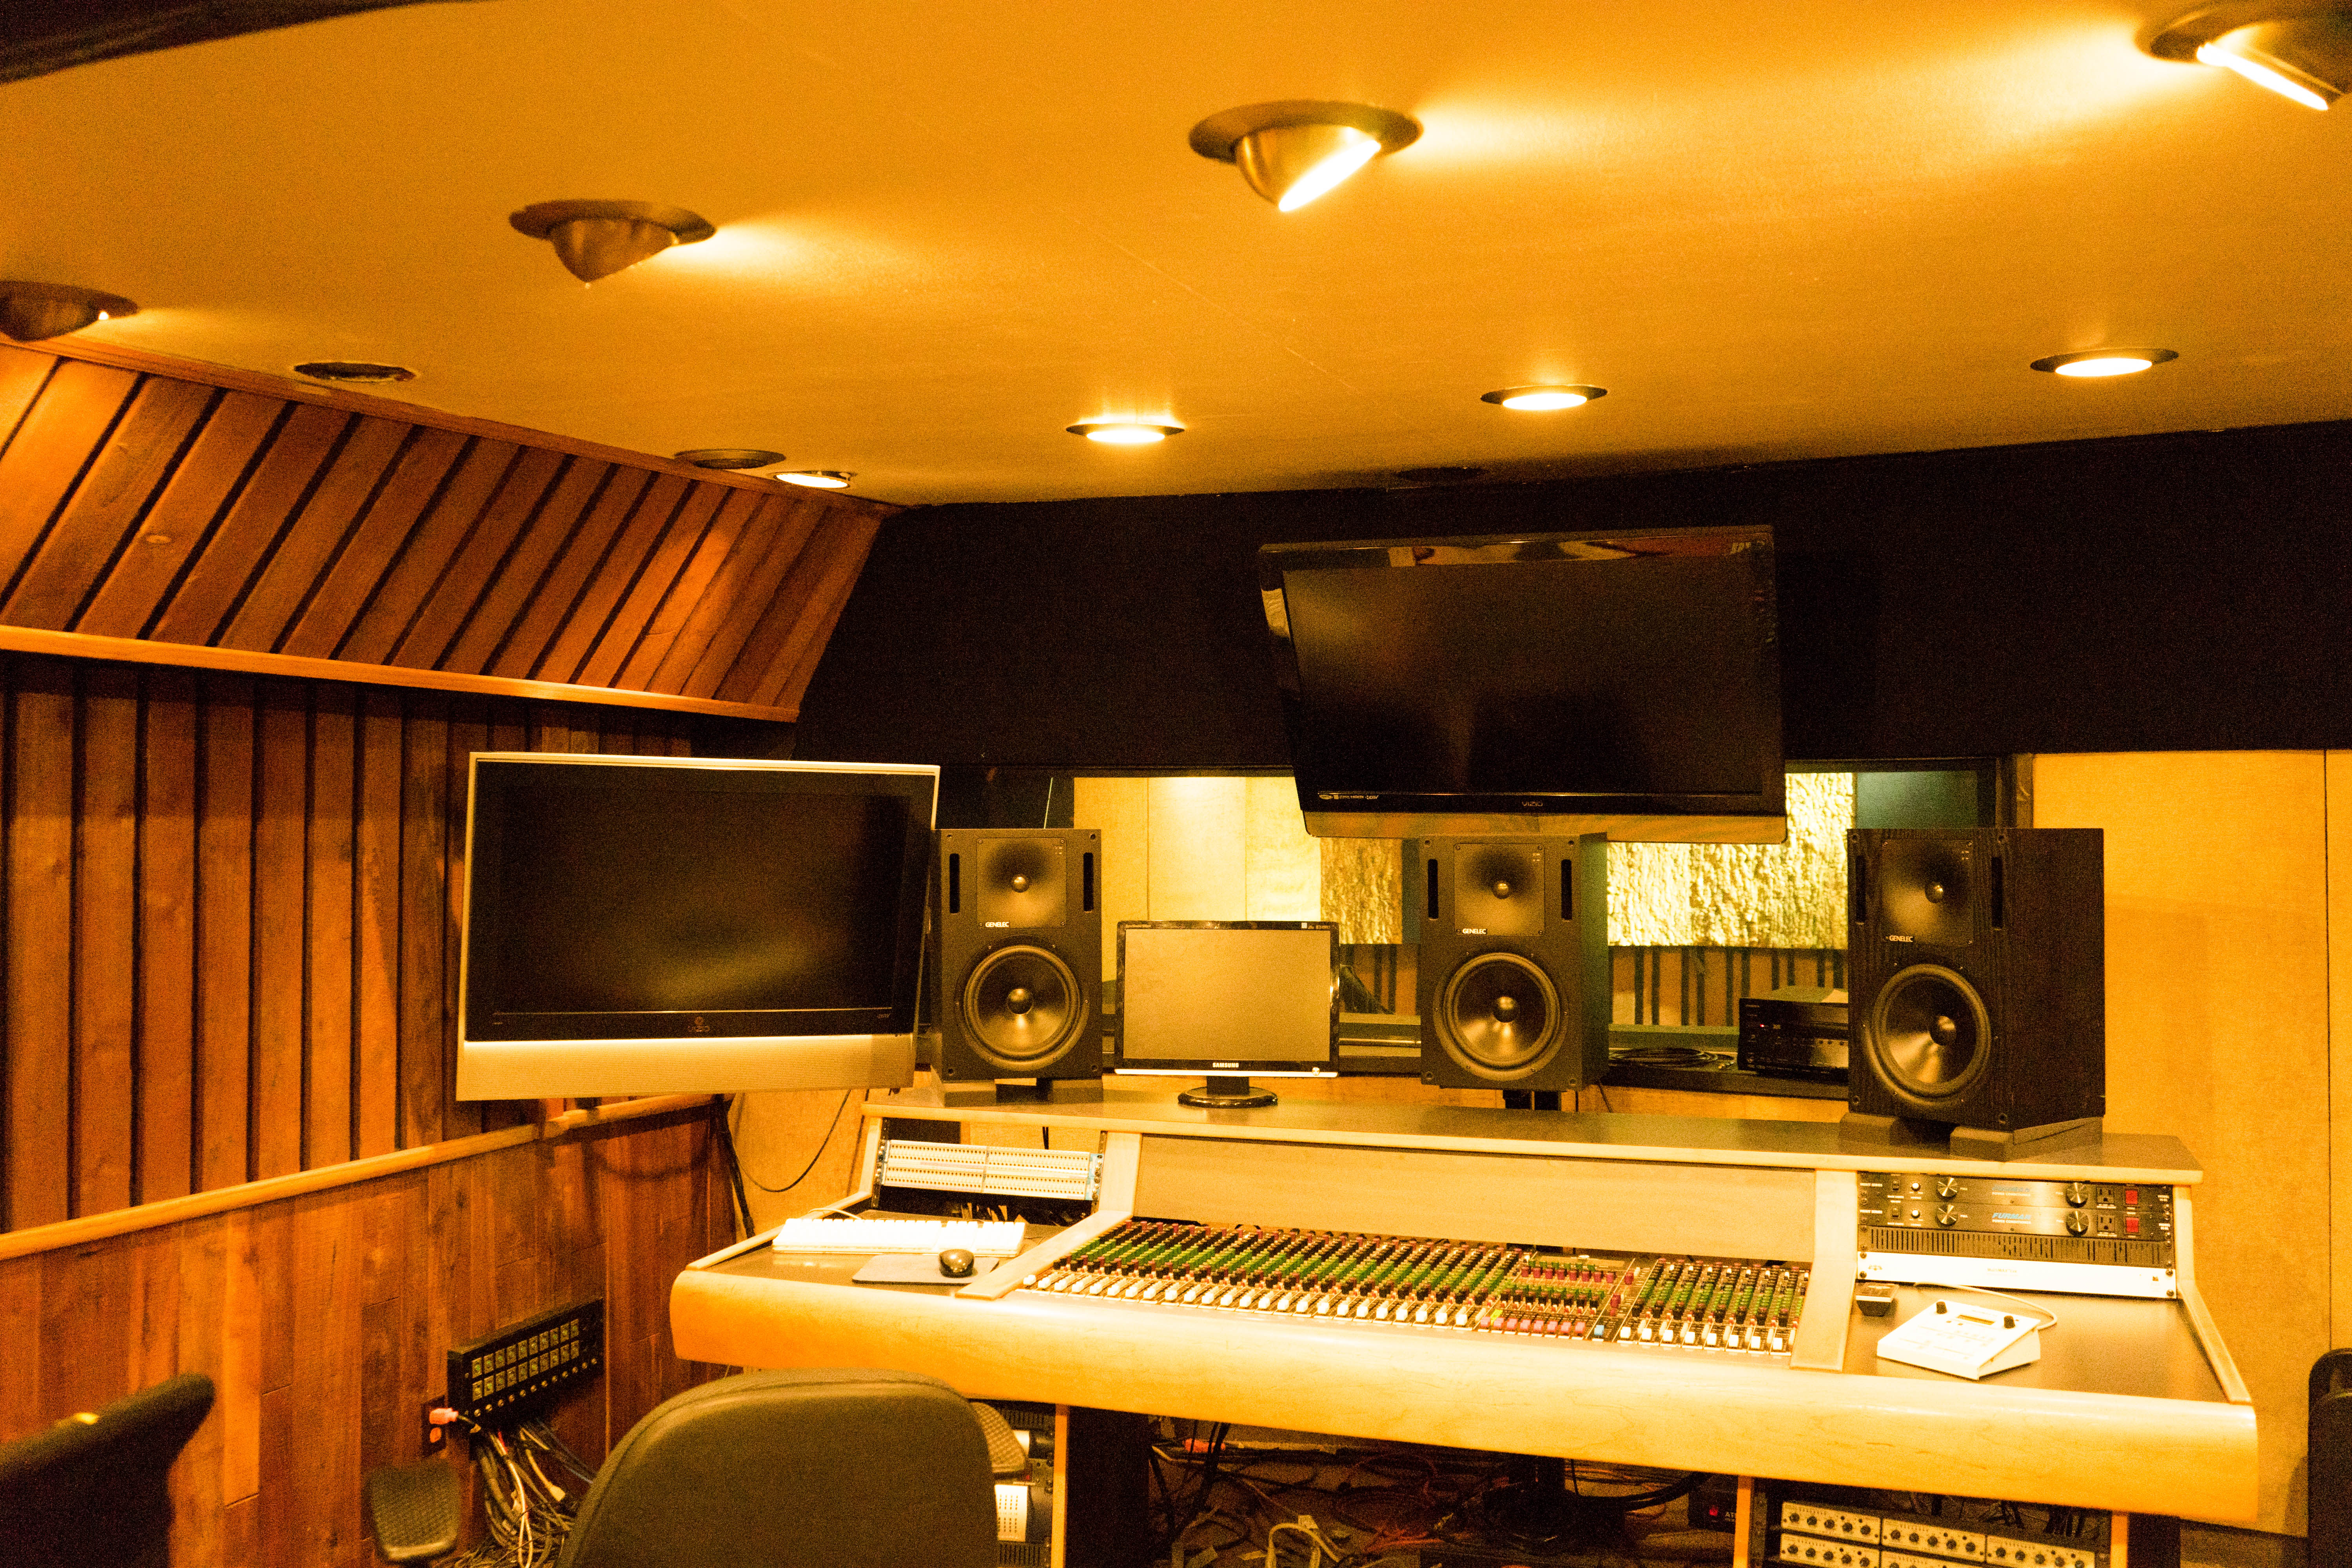 Control Room with link to more info on the Recording Studio